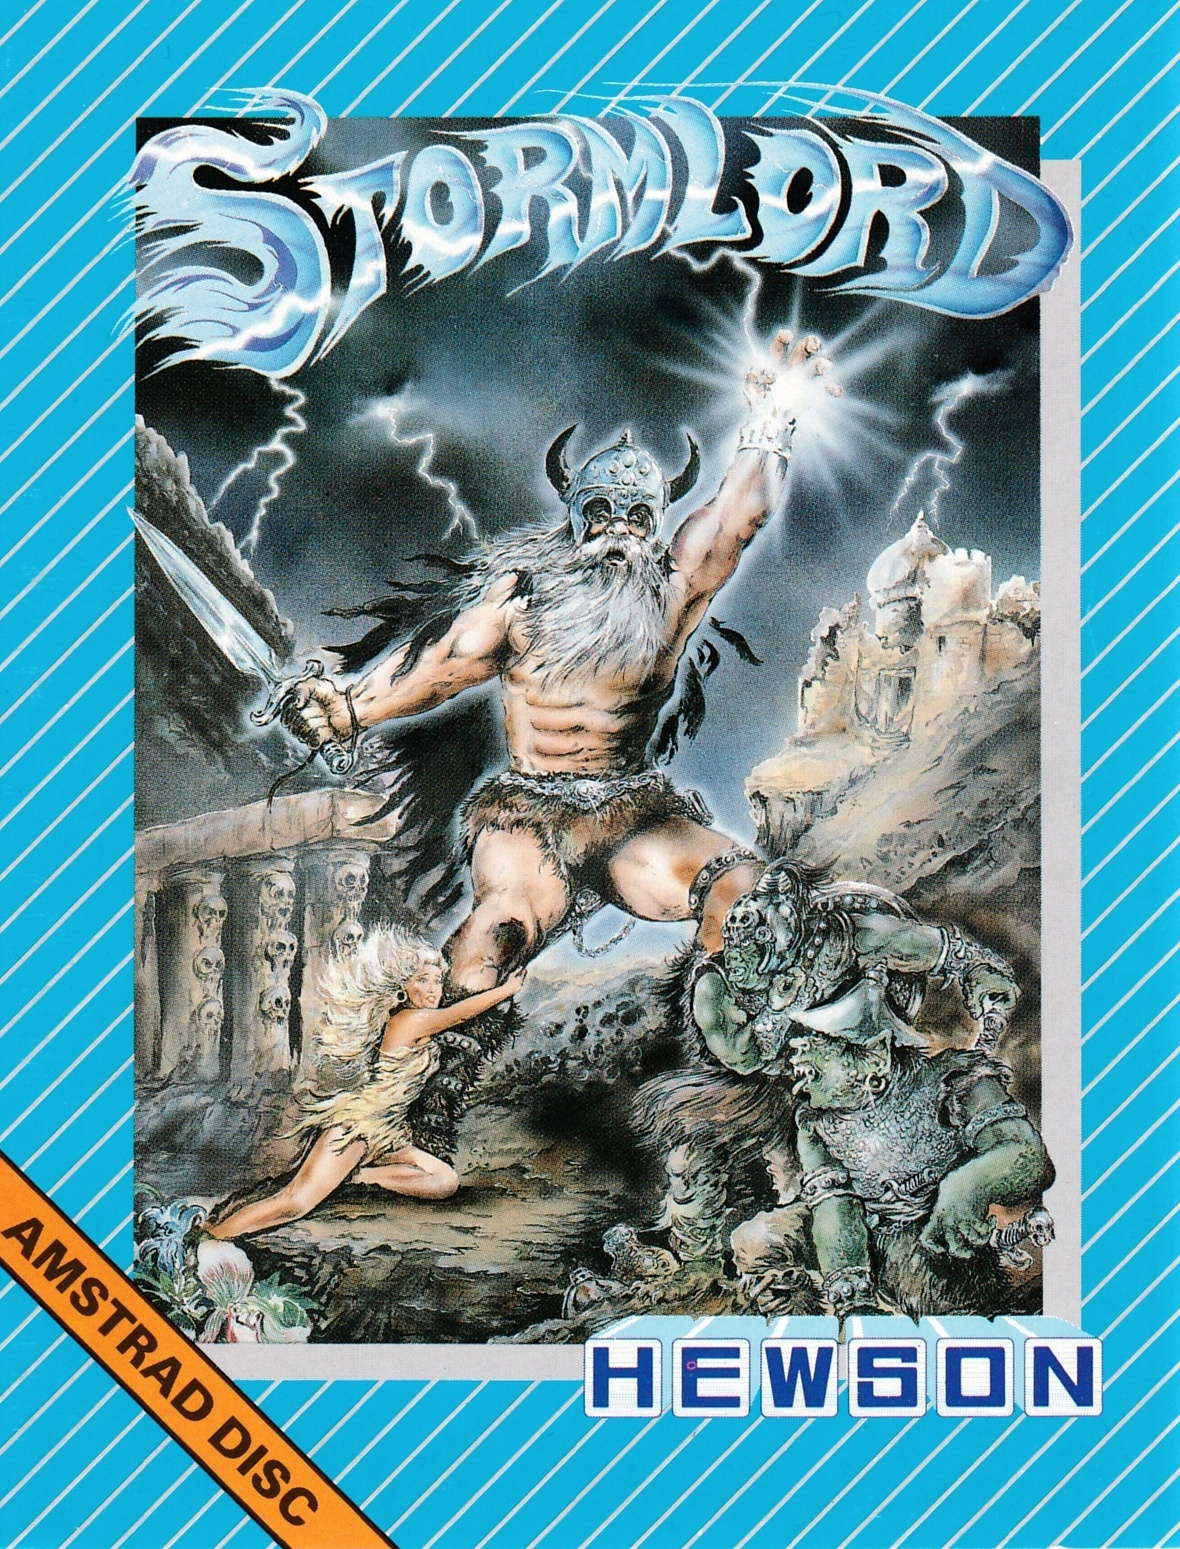 cover of the Amstrad CPC game Stormlord  by GameBase CPC